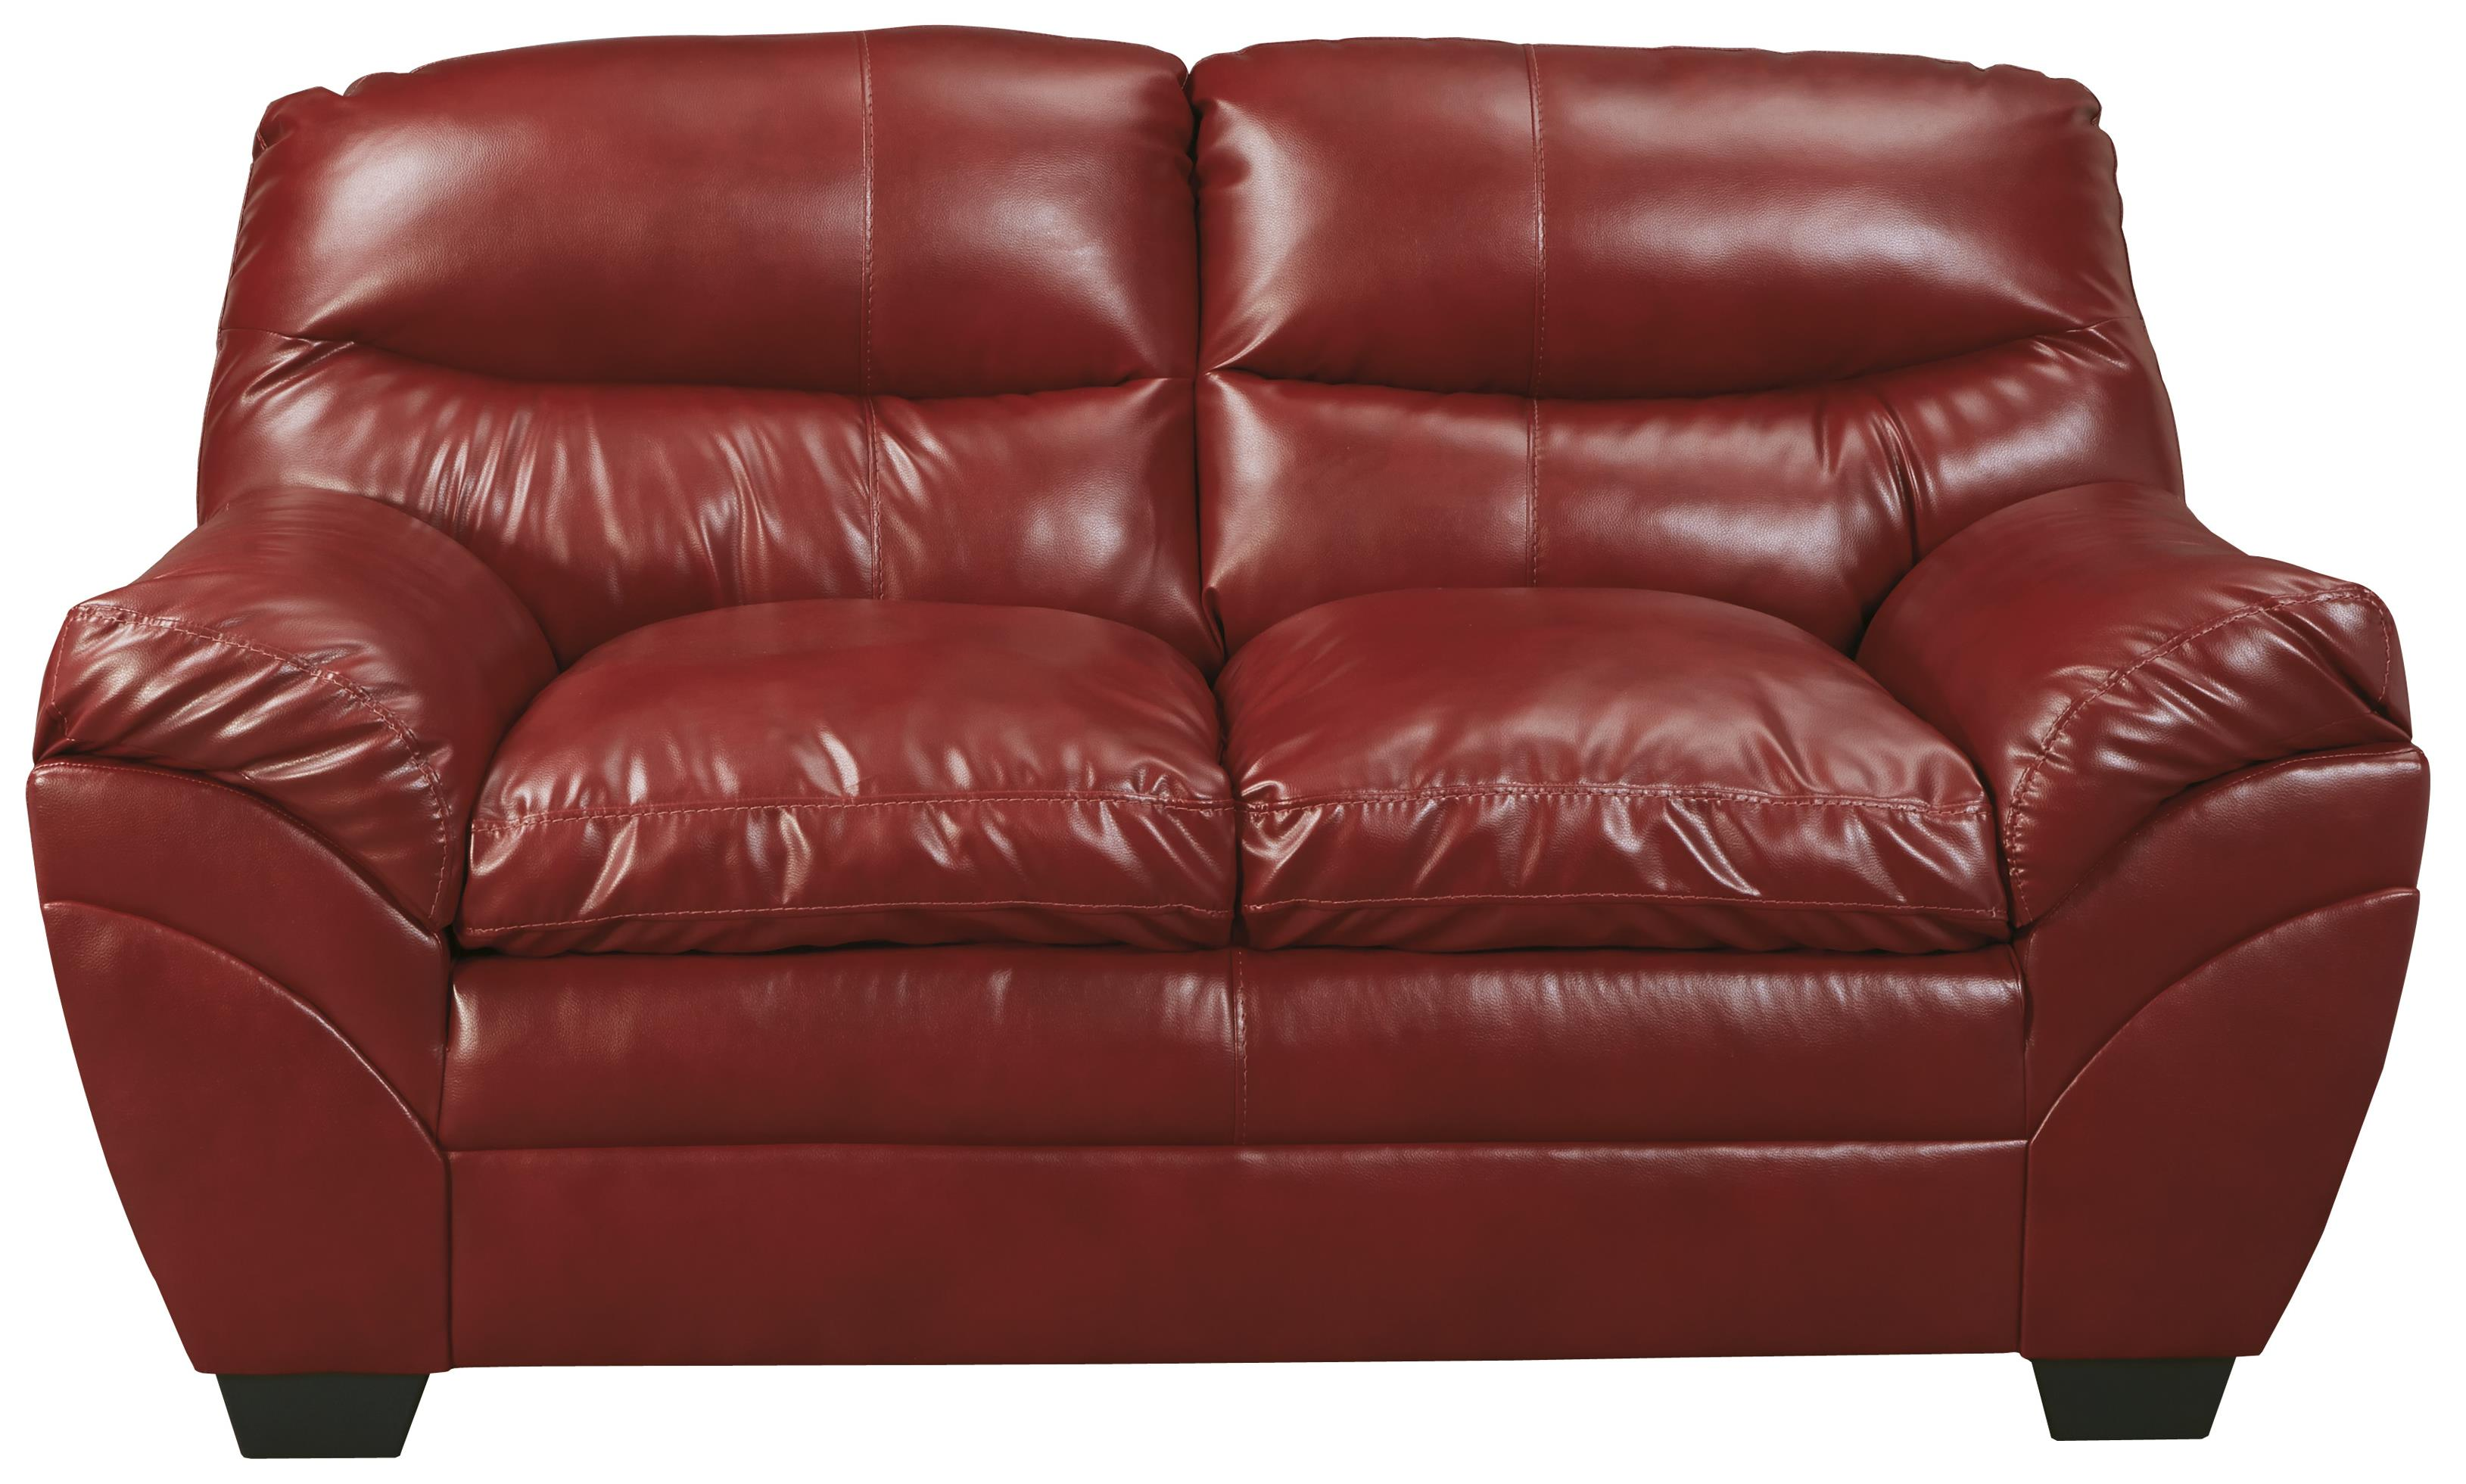 Ashley (Signature Design) Tassler DuraBlend® Loveseat - Item Number: 4650035